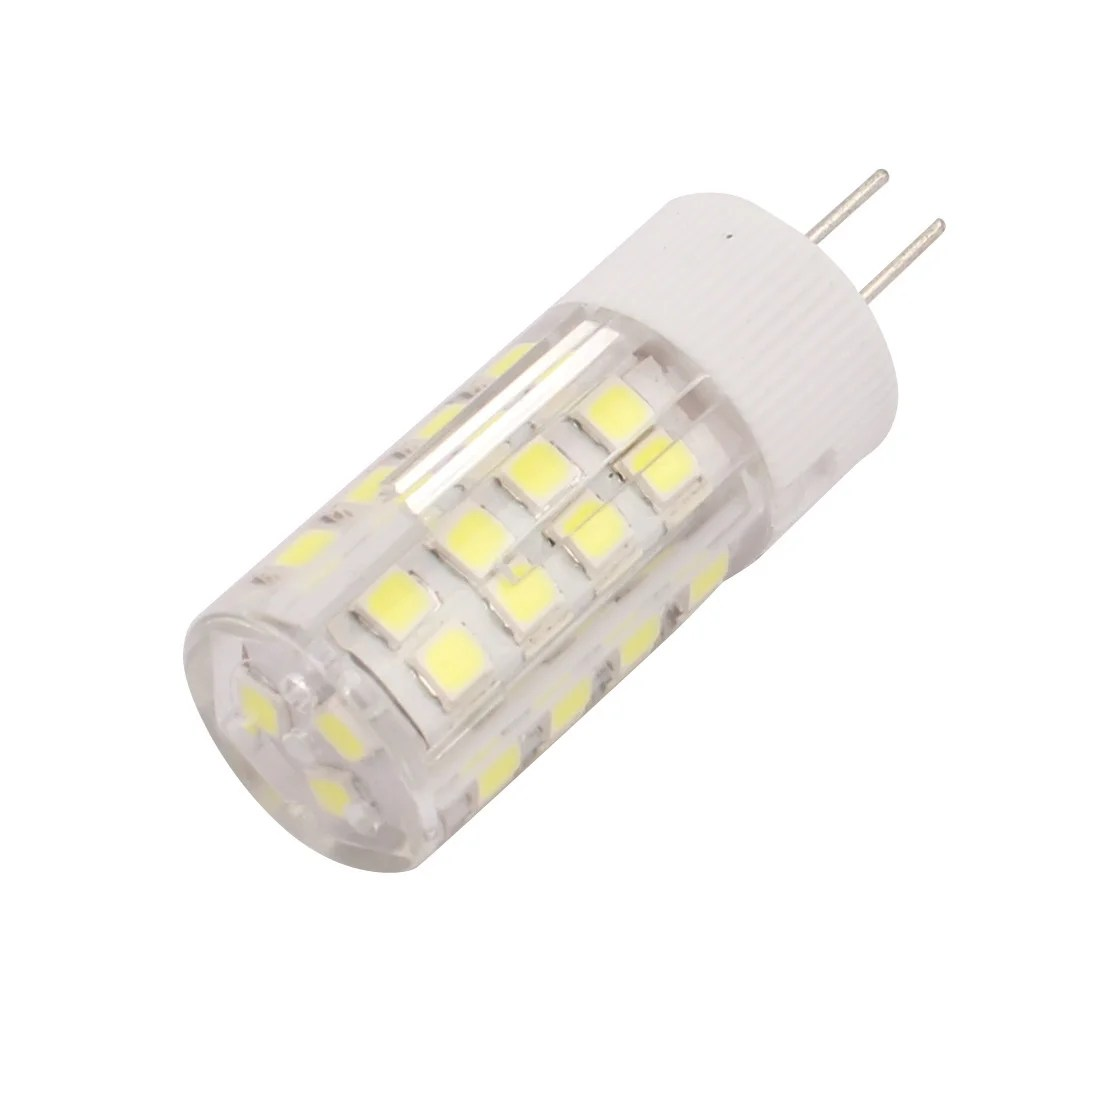 Led 220v 2 Pcs Ac 110v 220v 5w G4 2835 Smd Led Corn Light Bulb Lamp 51 Led Neutral White